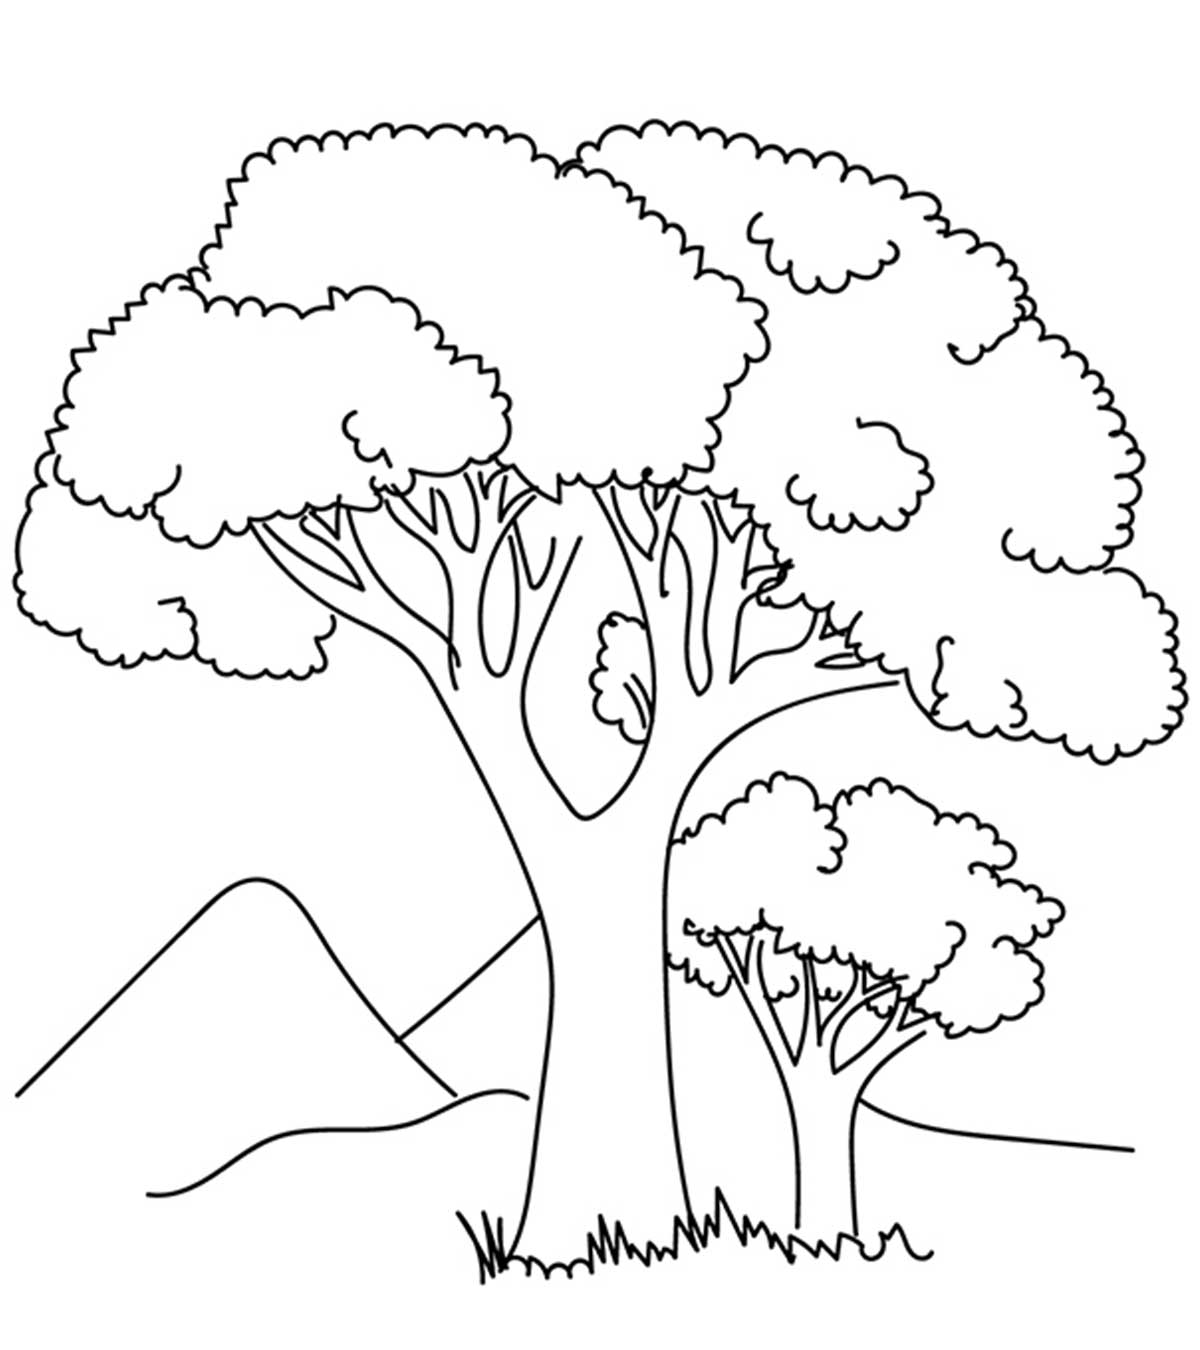 tree with leaves coloring pages tree without leaves coloring page to print and download leaves tree with coloring pages